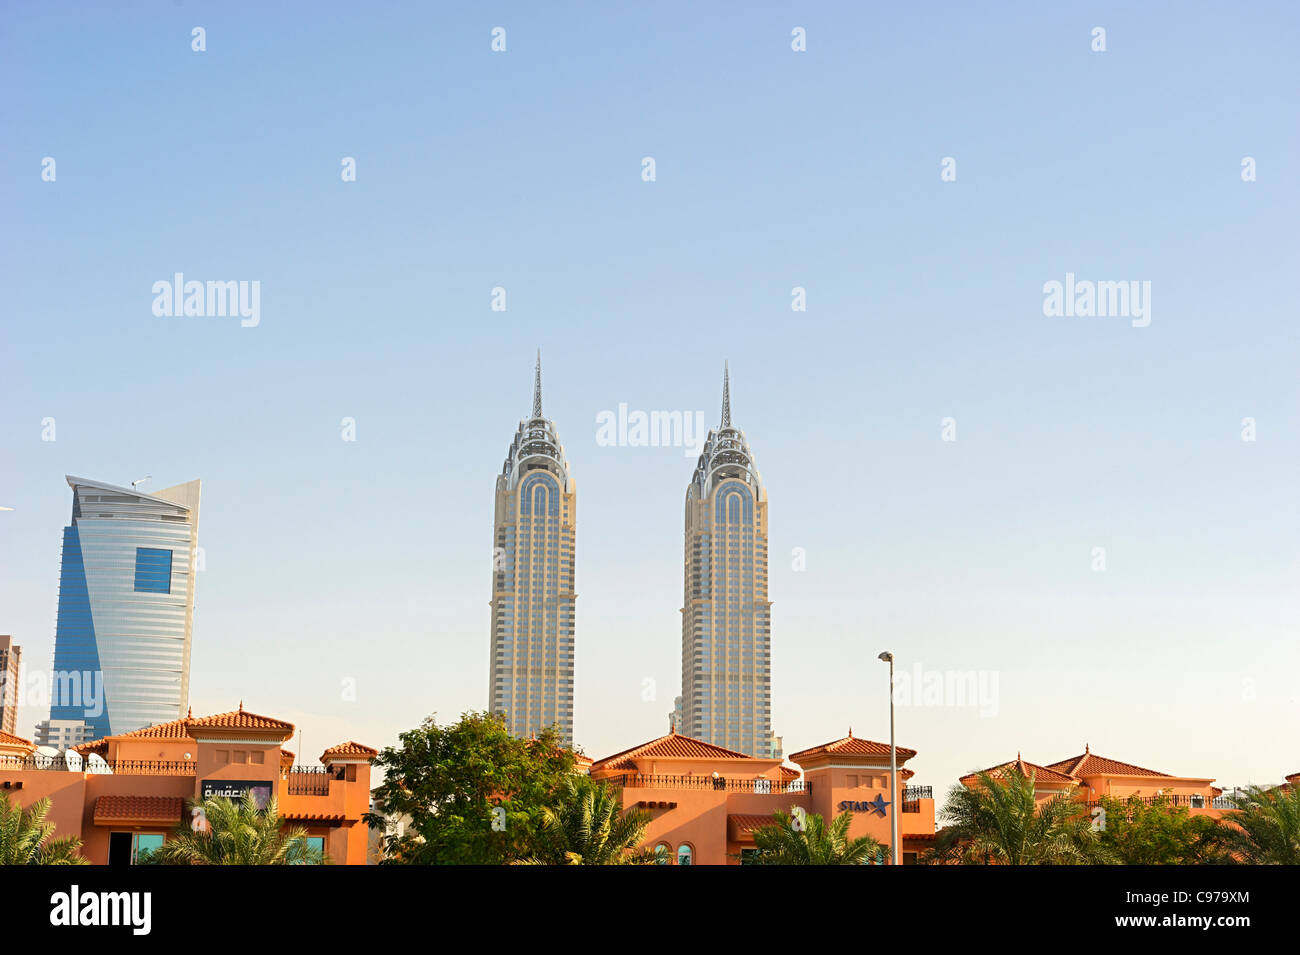 High-rise buildings, downtown Dubai, Dubai, United Arab Emirates, Middle East - Stock Image